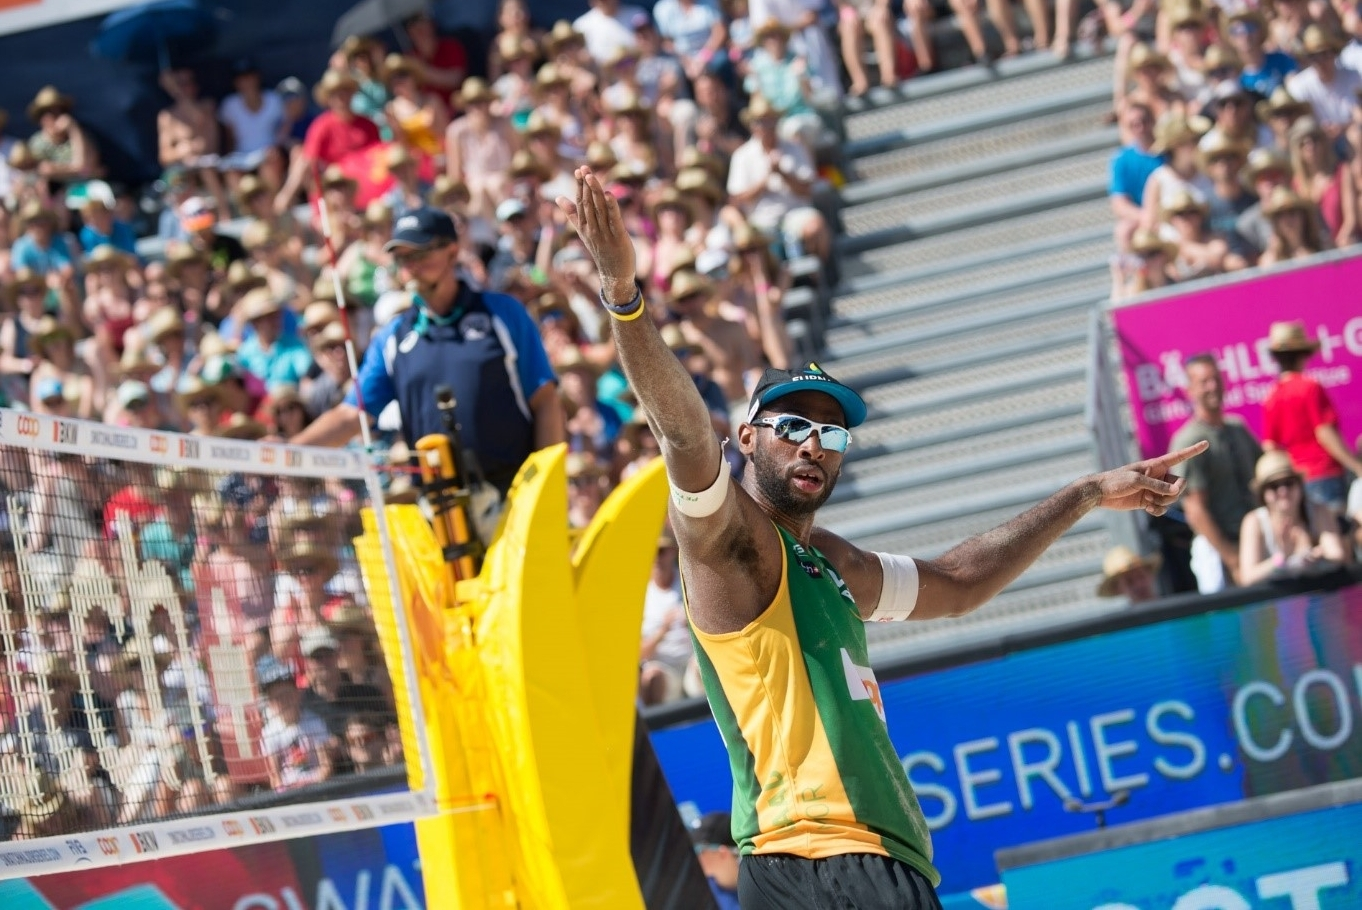 Ace in the pack: Evandro delivered 23 aces – more than any other player in Gstaad. Photocredit: Mihai Stetcu.